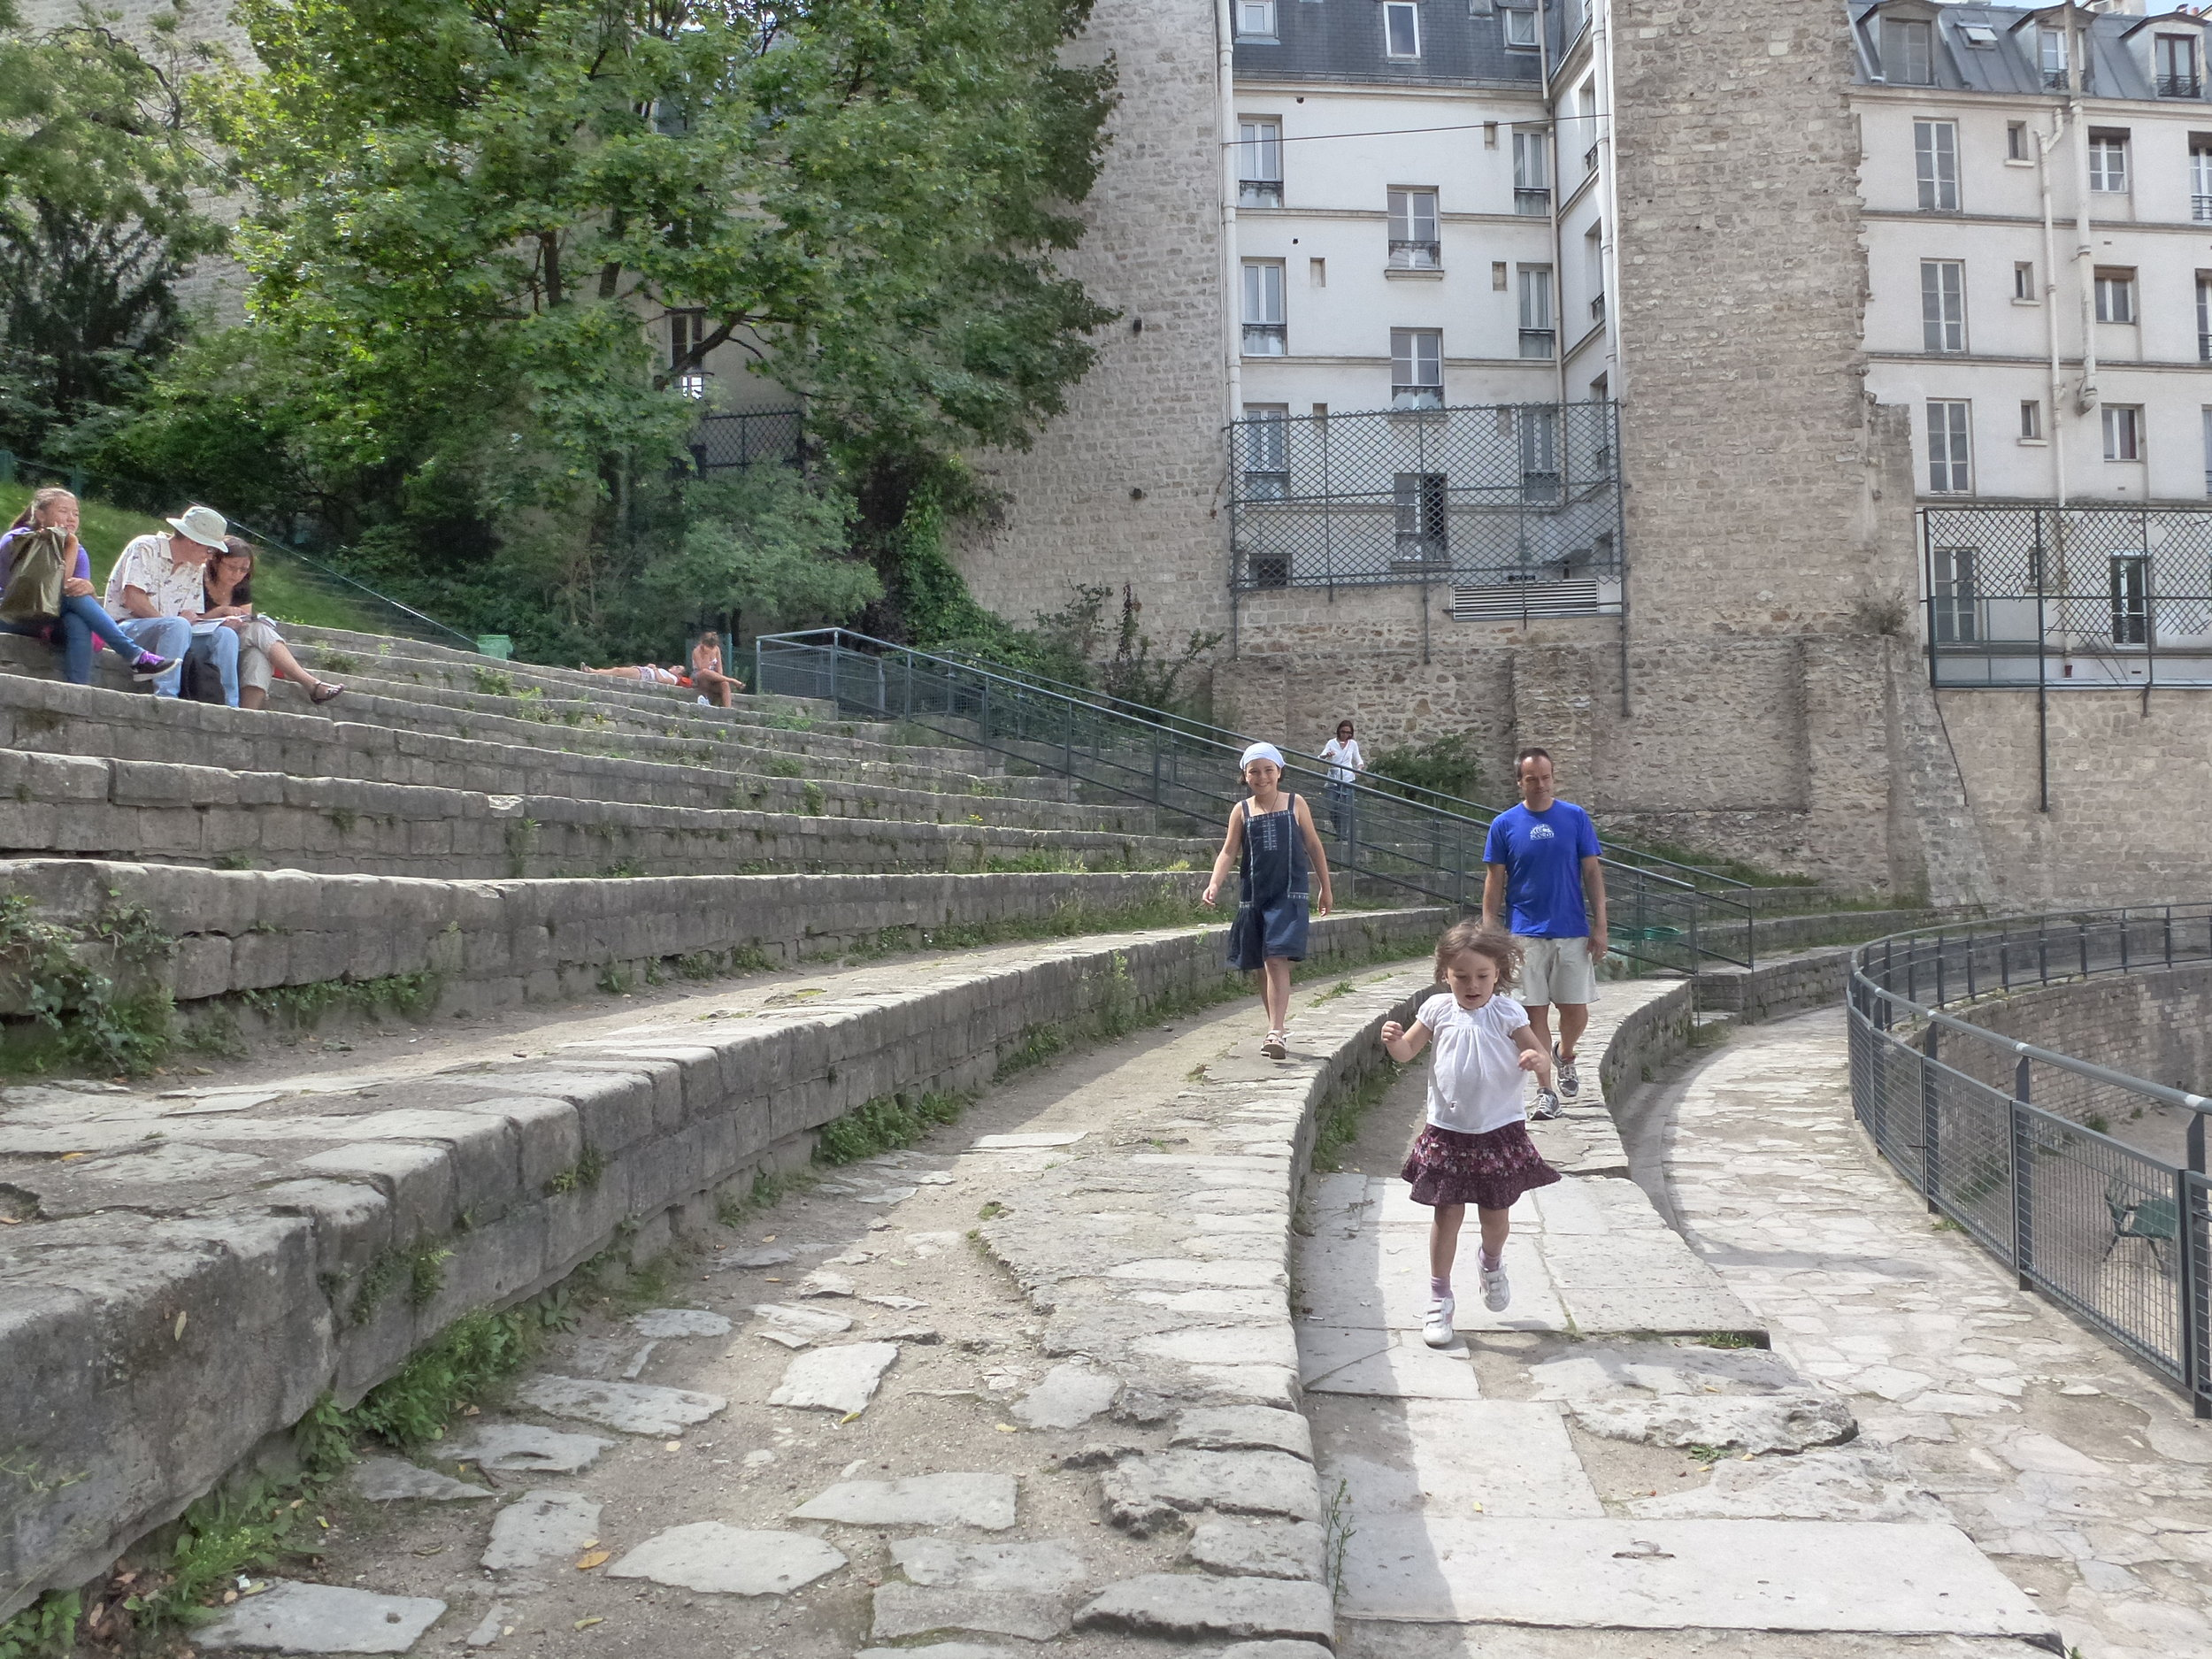 Clem, Franck, and Camille roaming around the steps where Romans used to lounge to watch gladiator fights.